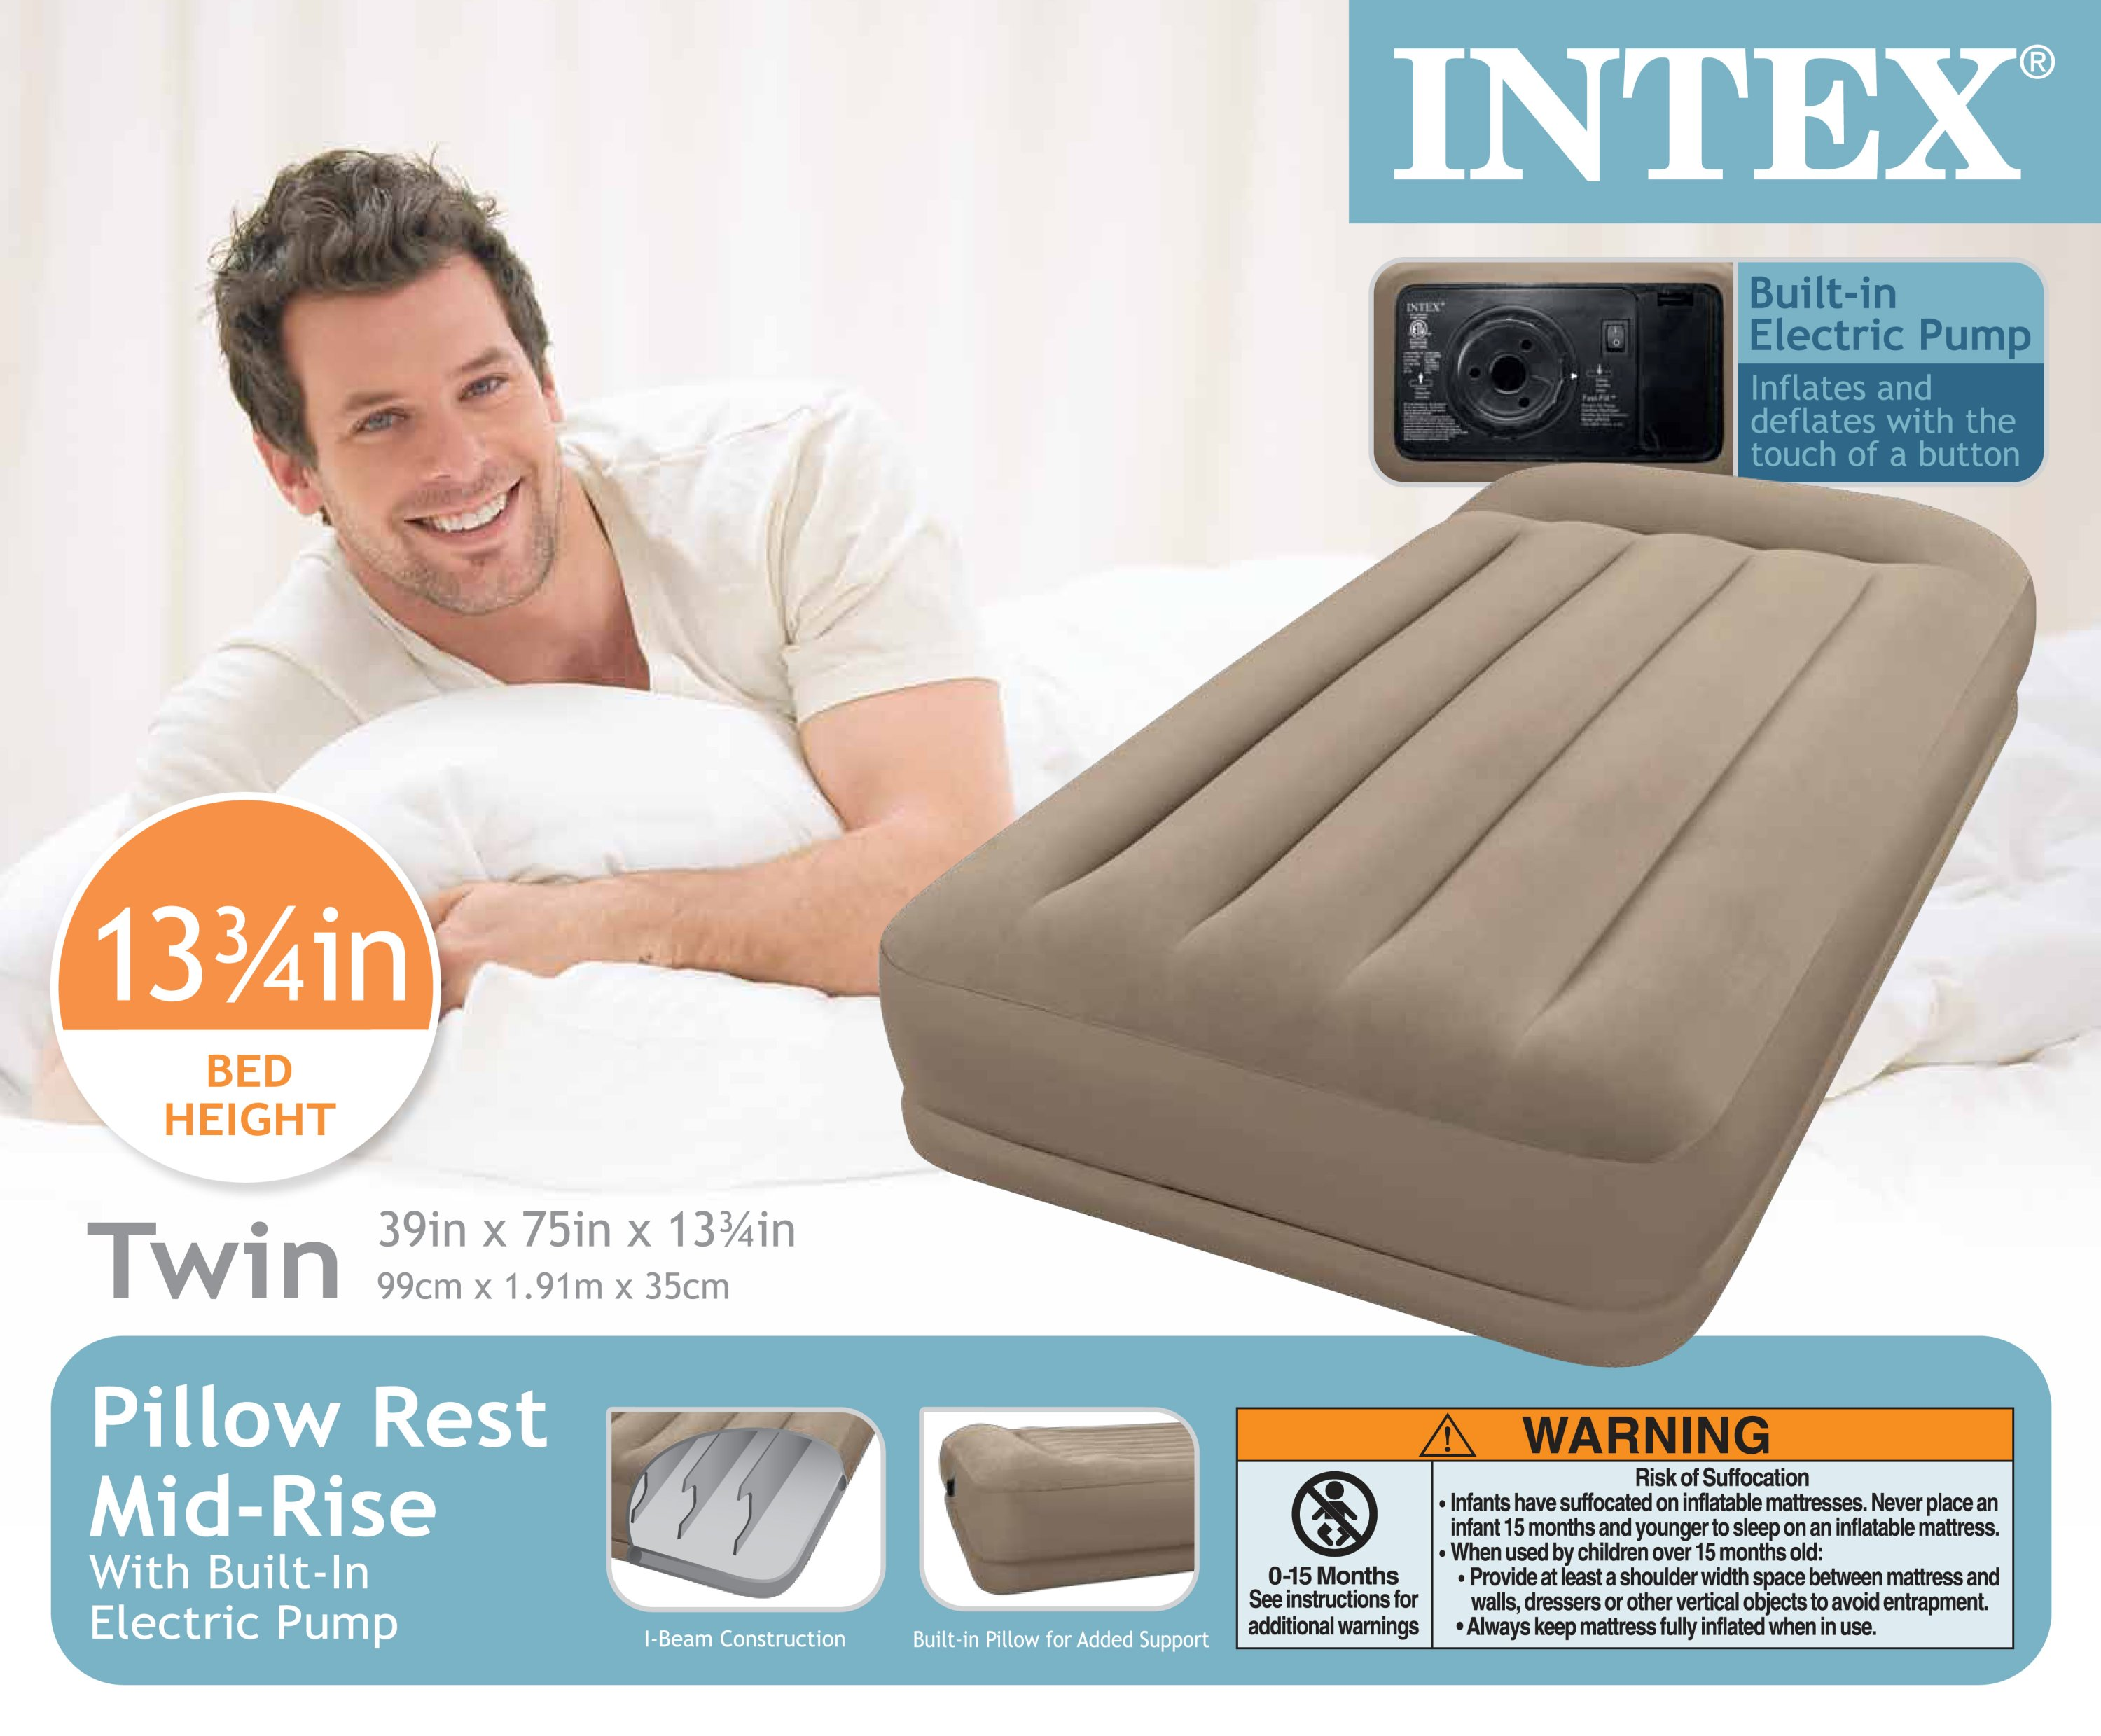 Intex pillow rest mid rise air bed mattress airbed w built for Intex pool handler